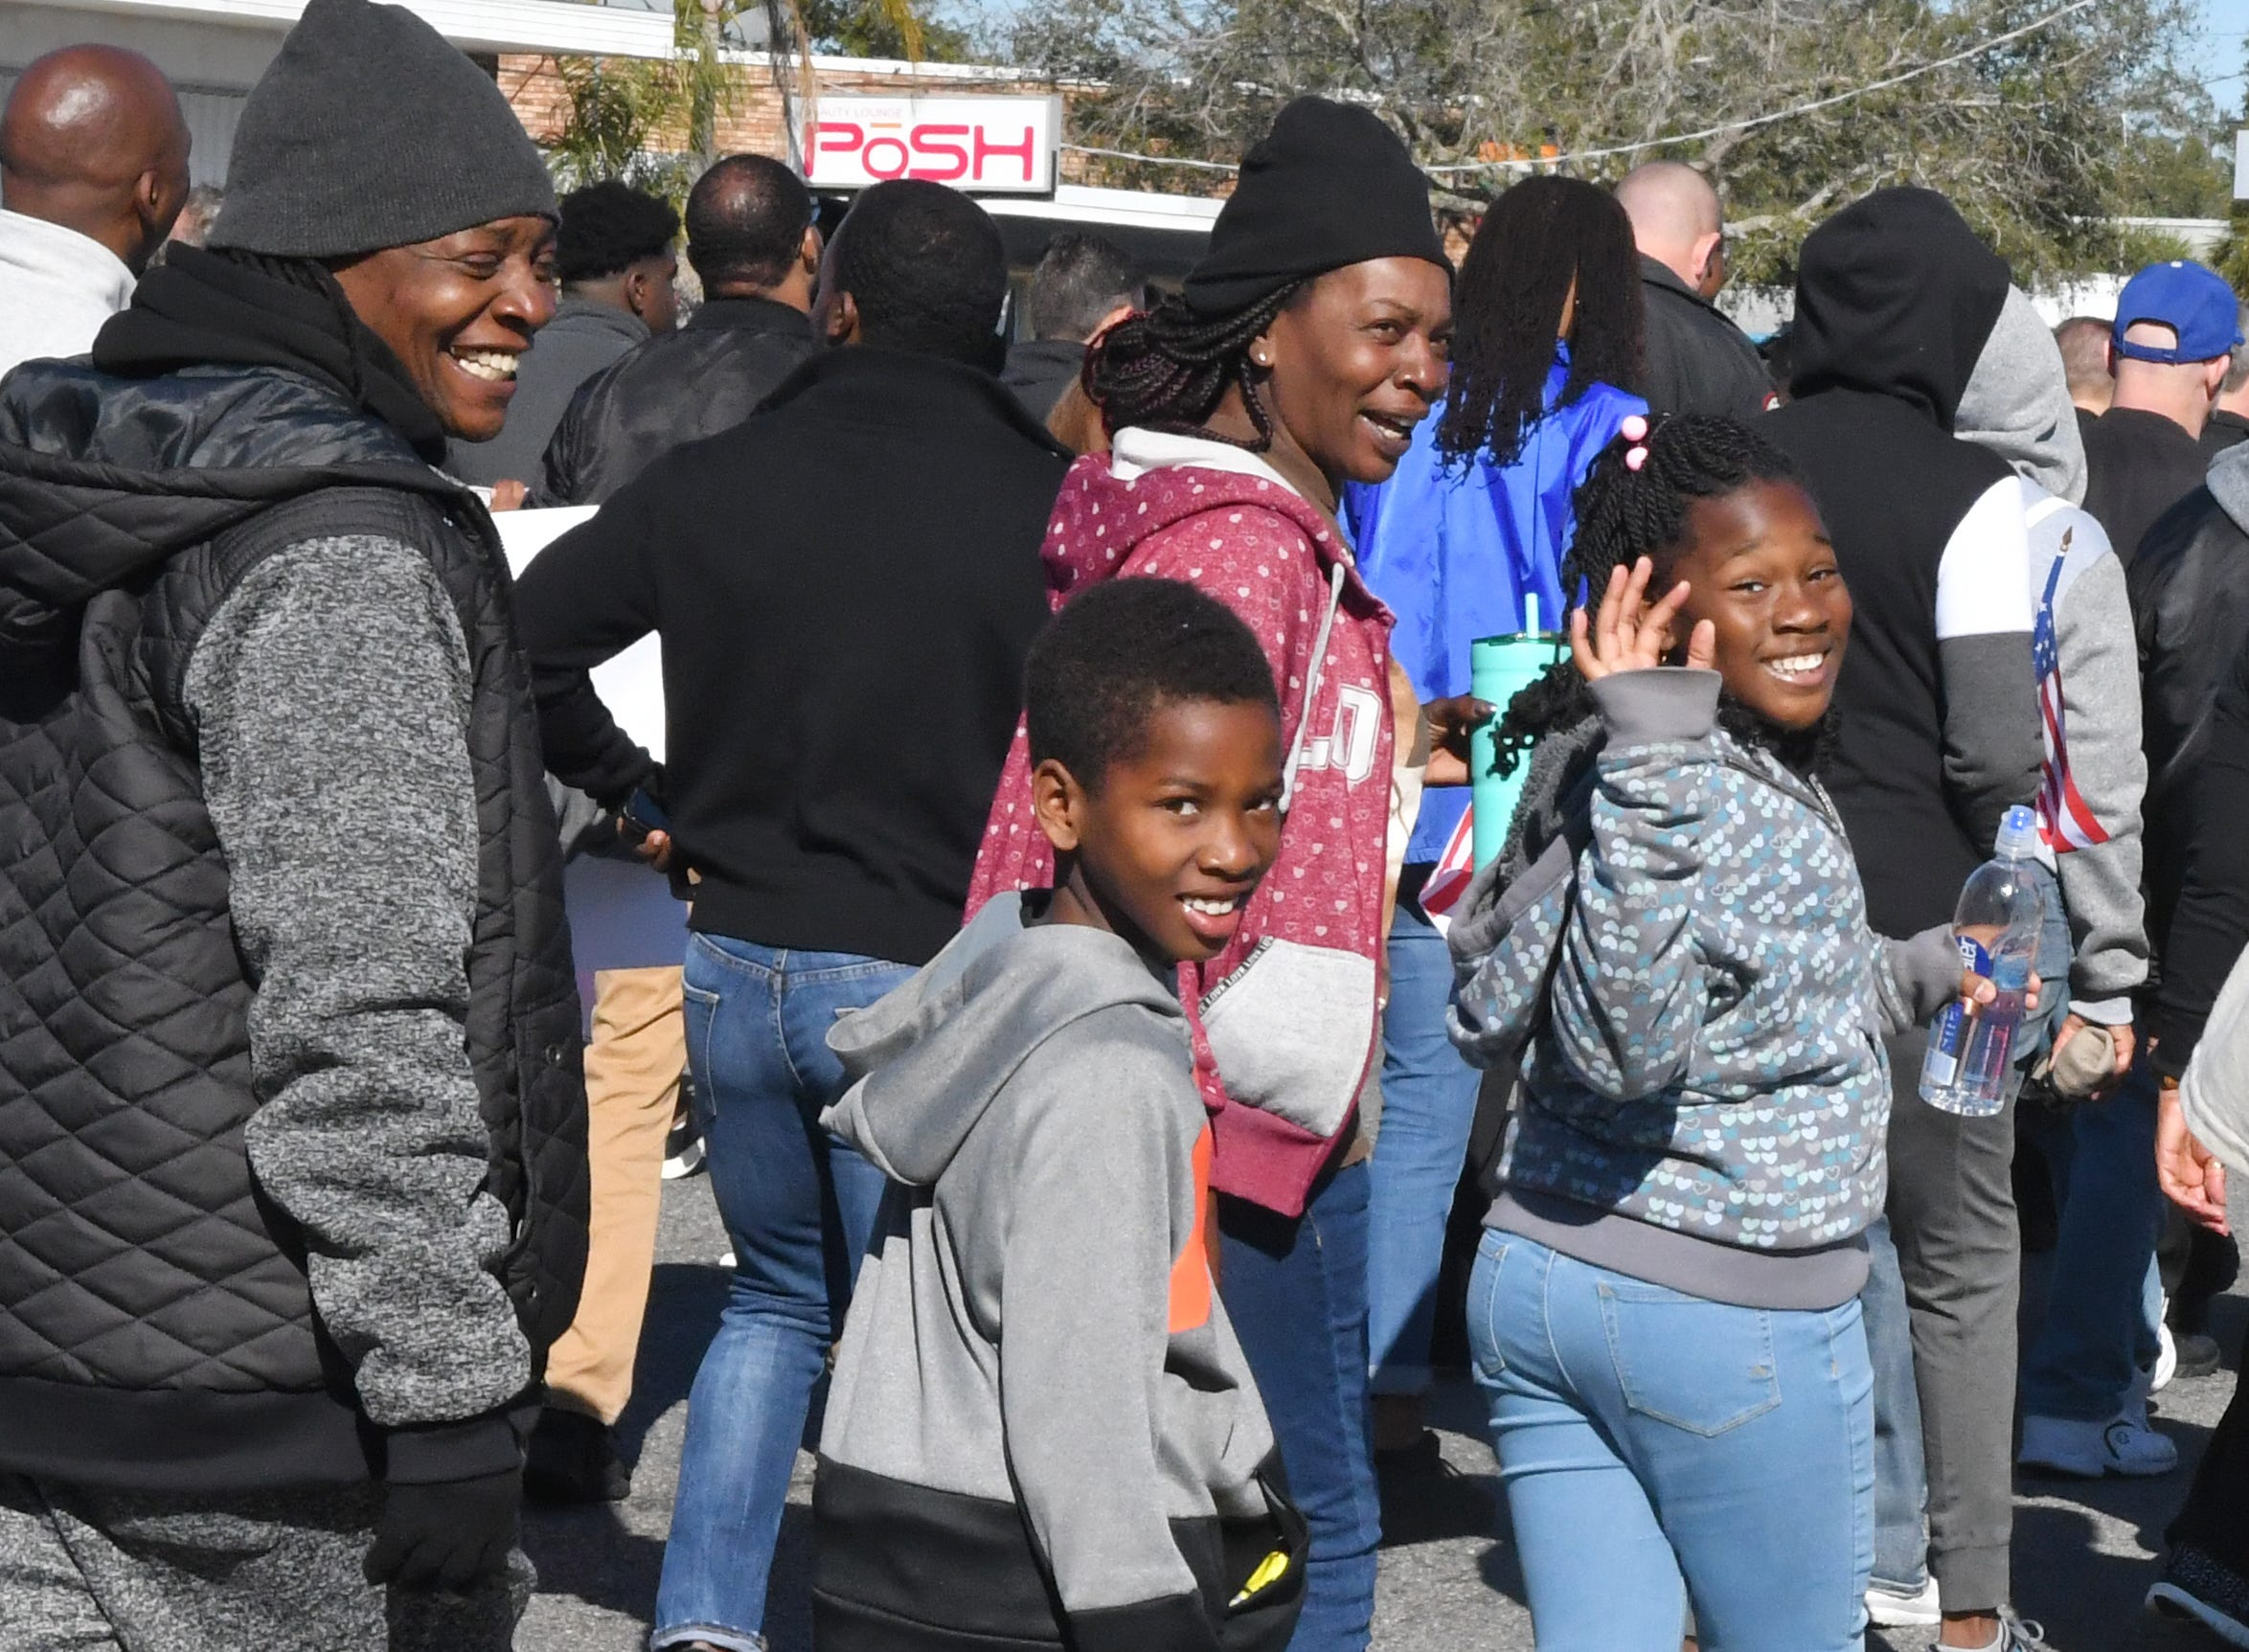 The 33rd year for the Melbourne, Fl. MLK Peace March, hosted by the Martin Luther King, Jr. Coalition, was held Monday morning. Hundreds of marchers began at the Dr. Martin Luther King, Jr. Public Library, and walked the three miles to the Melbourne Auditorium.